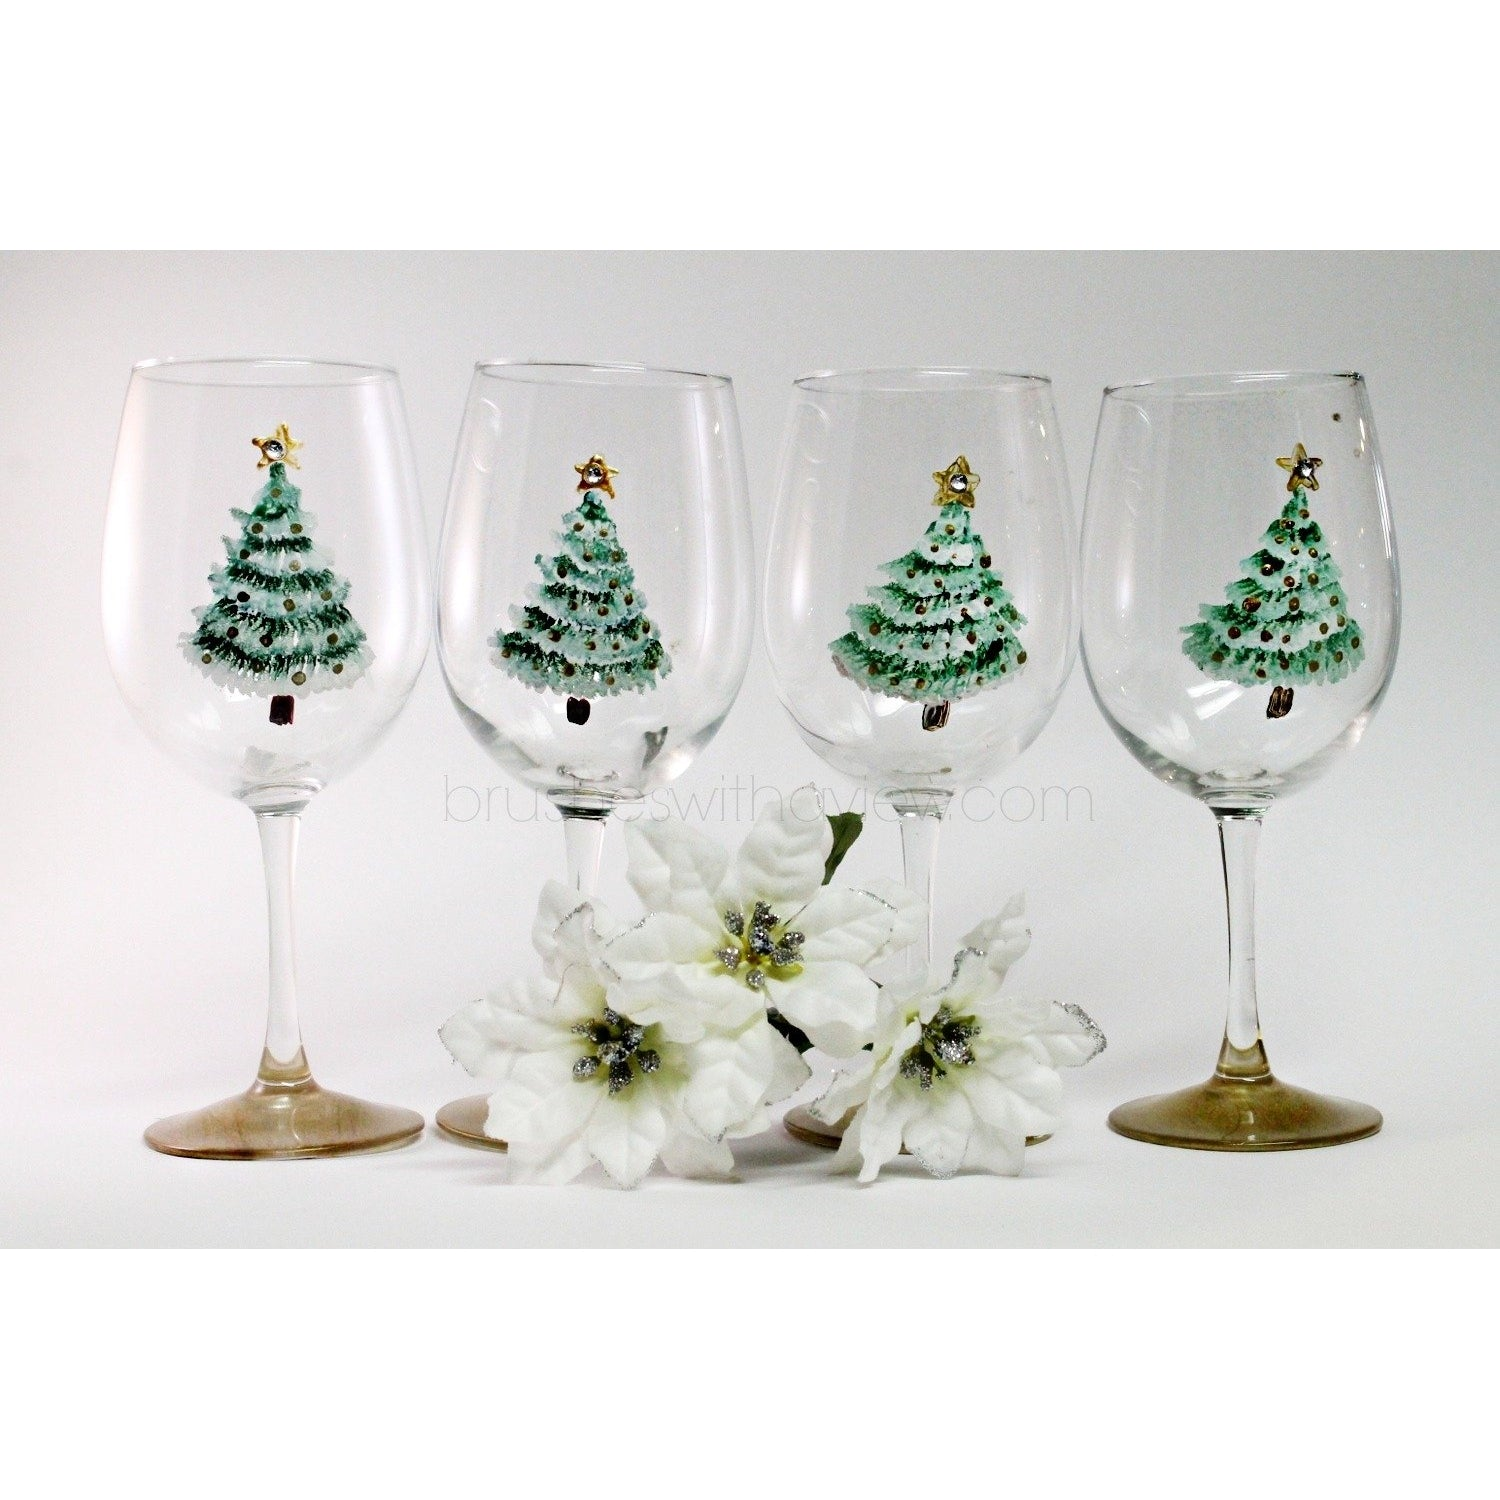 Christmas - Holiday Wine Glasses